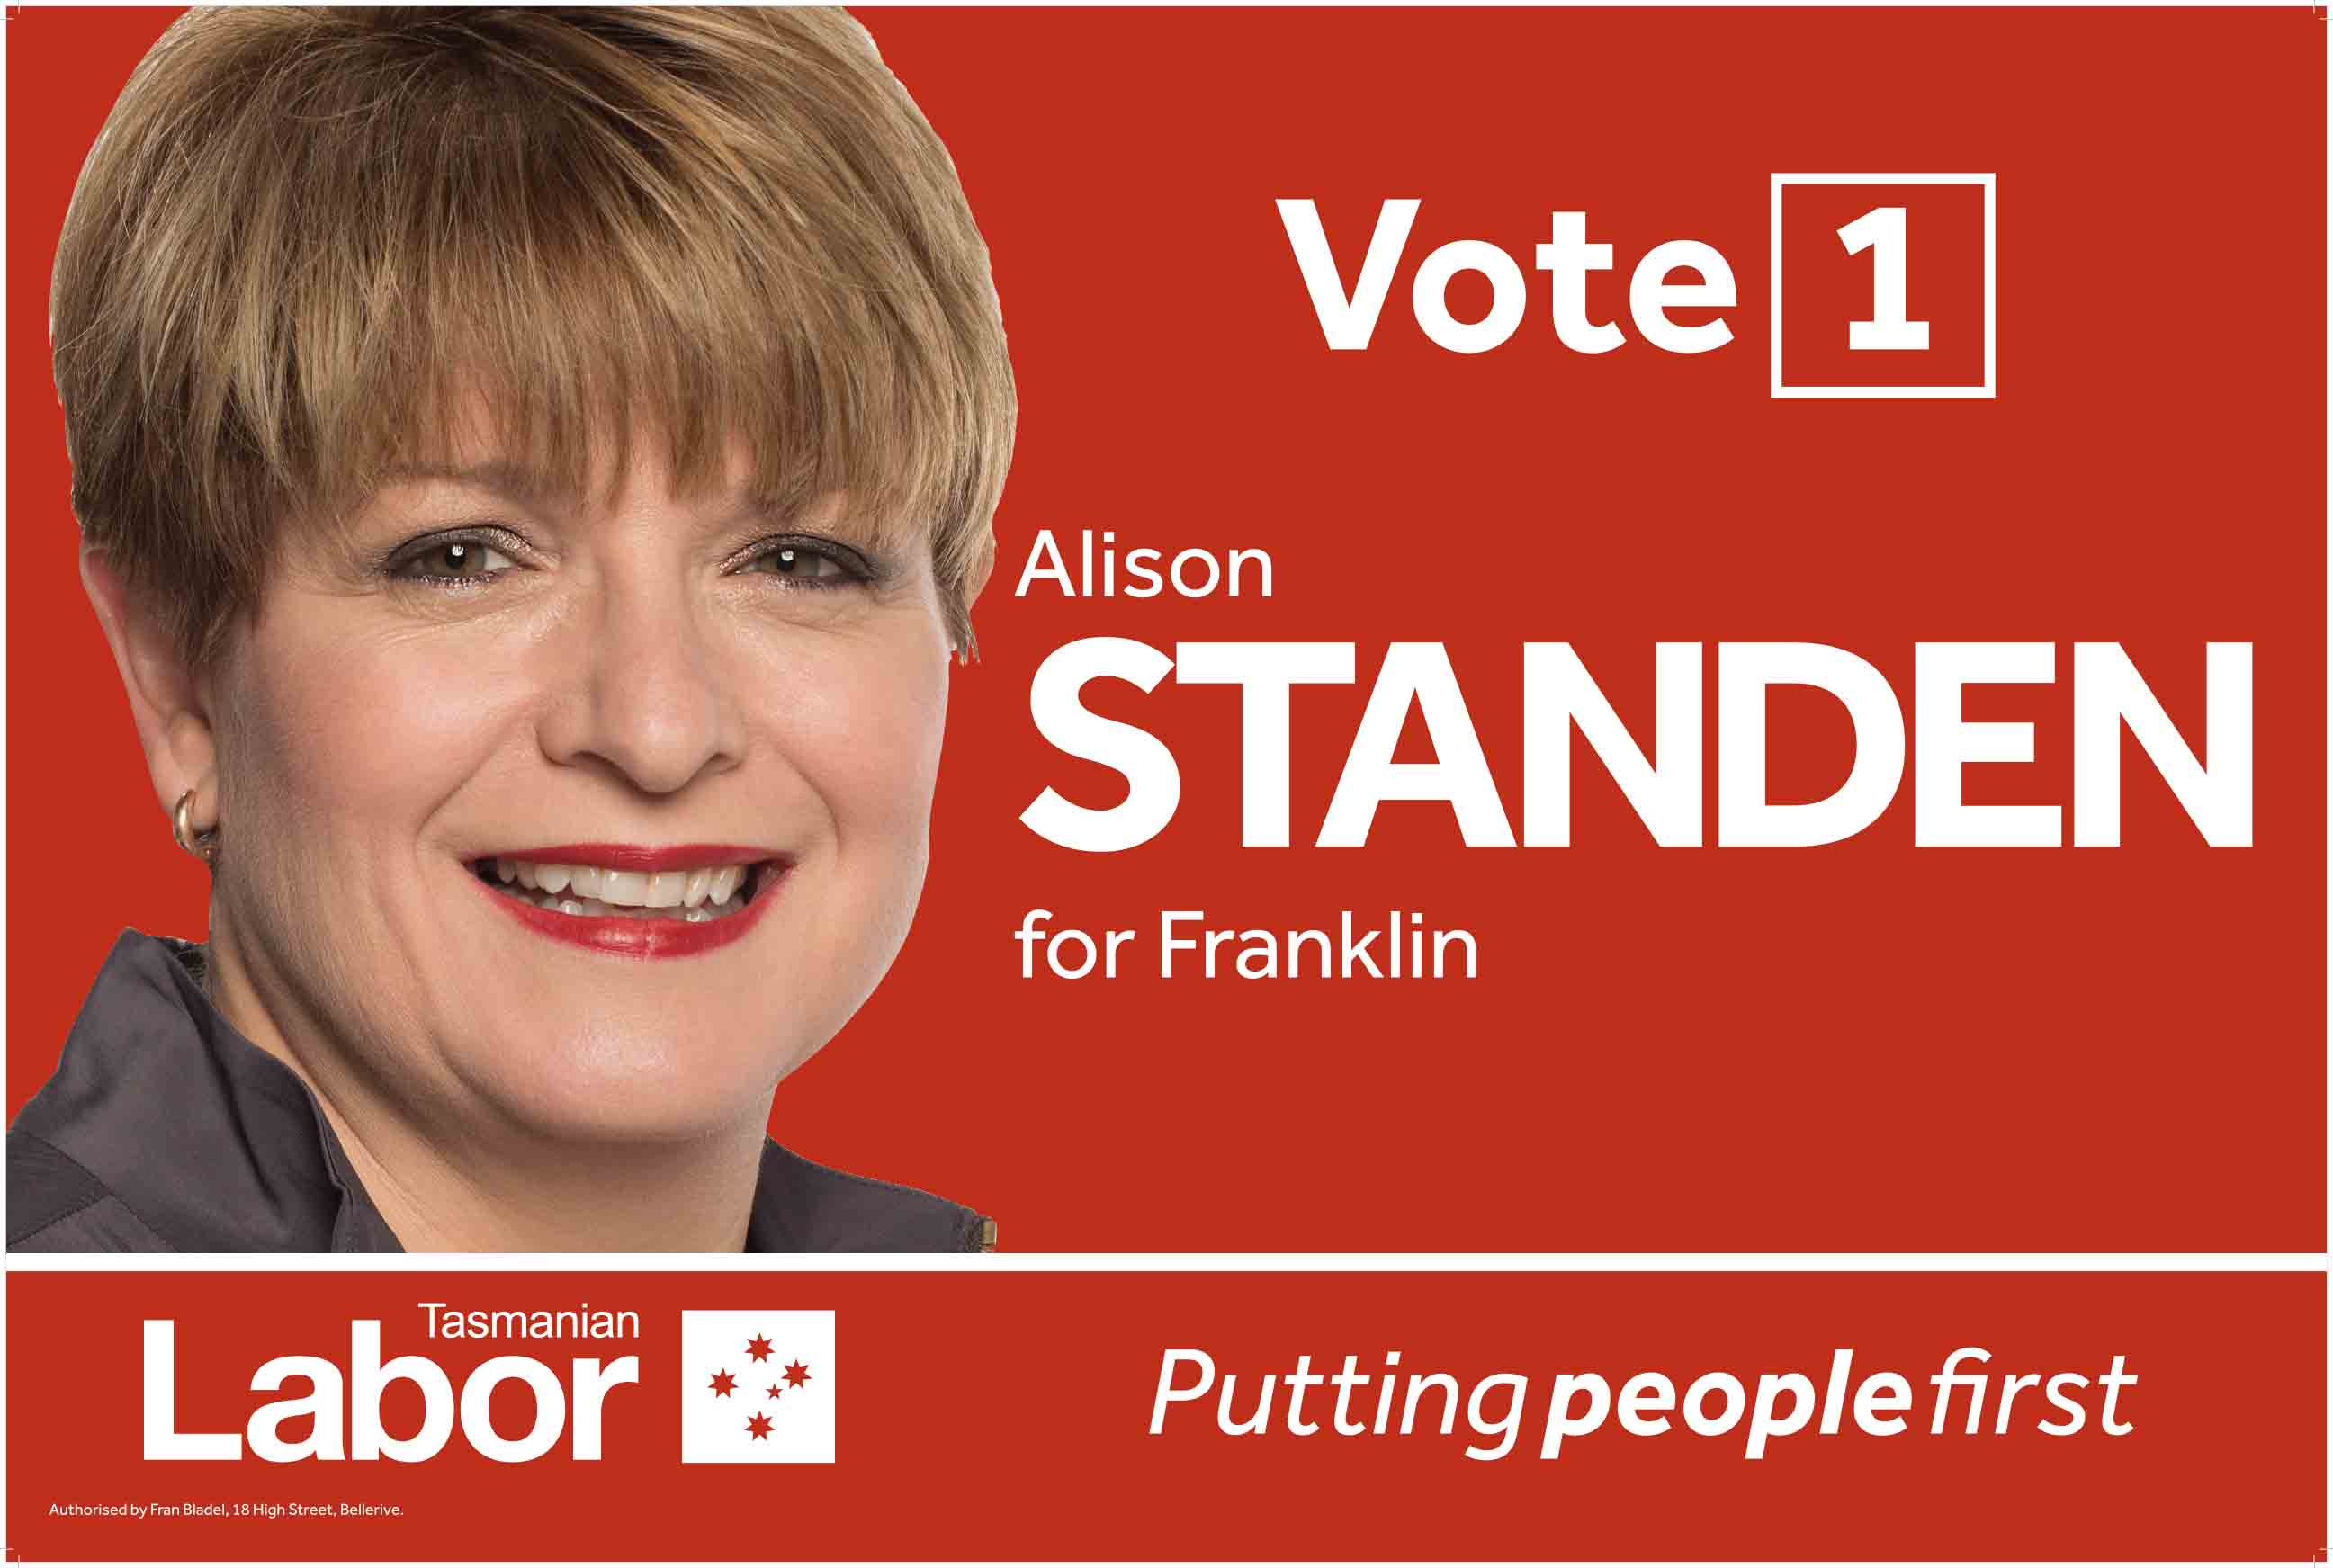 Vote 1 Poster for Alison Standen